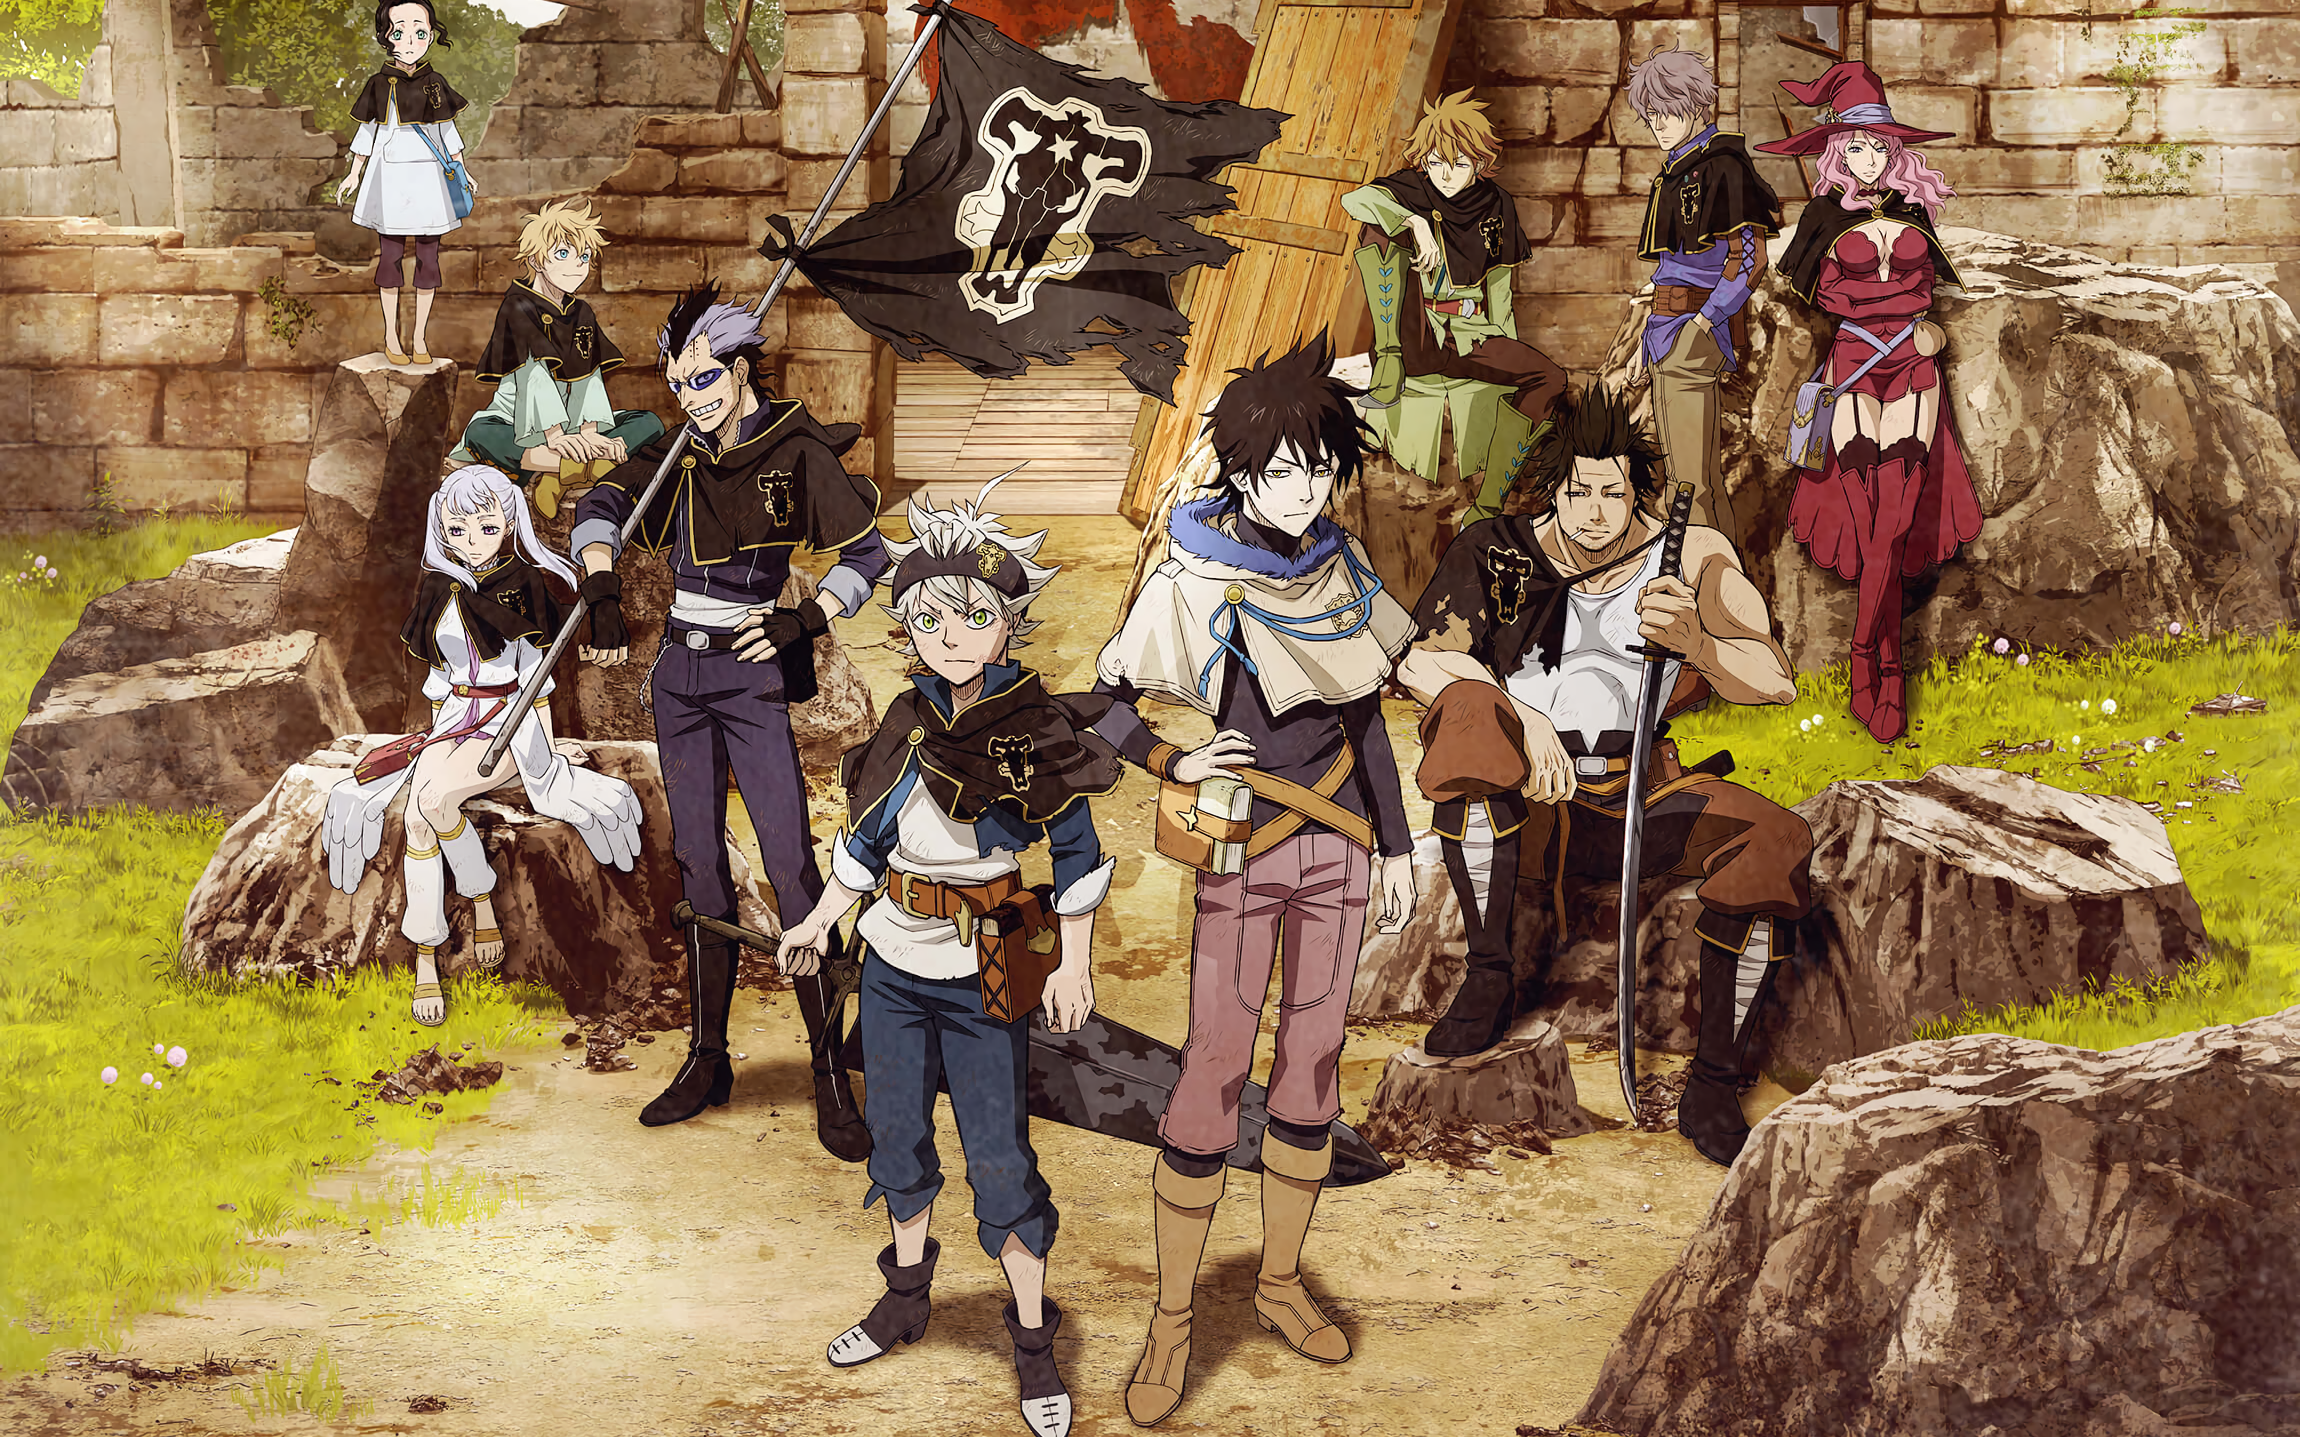 Download black clover anime hd wallpapers & backgrounds for desktop pc, mac, laptop, iphone, android, mobile phones, tablets. Black Clover HD Wallpaper 4K for PC - Anime Wallpapers HD ...